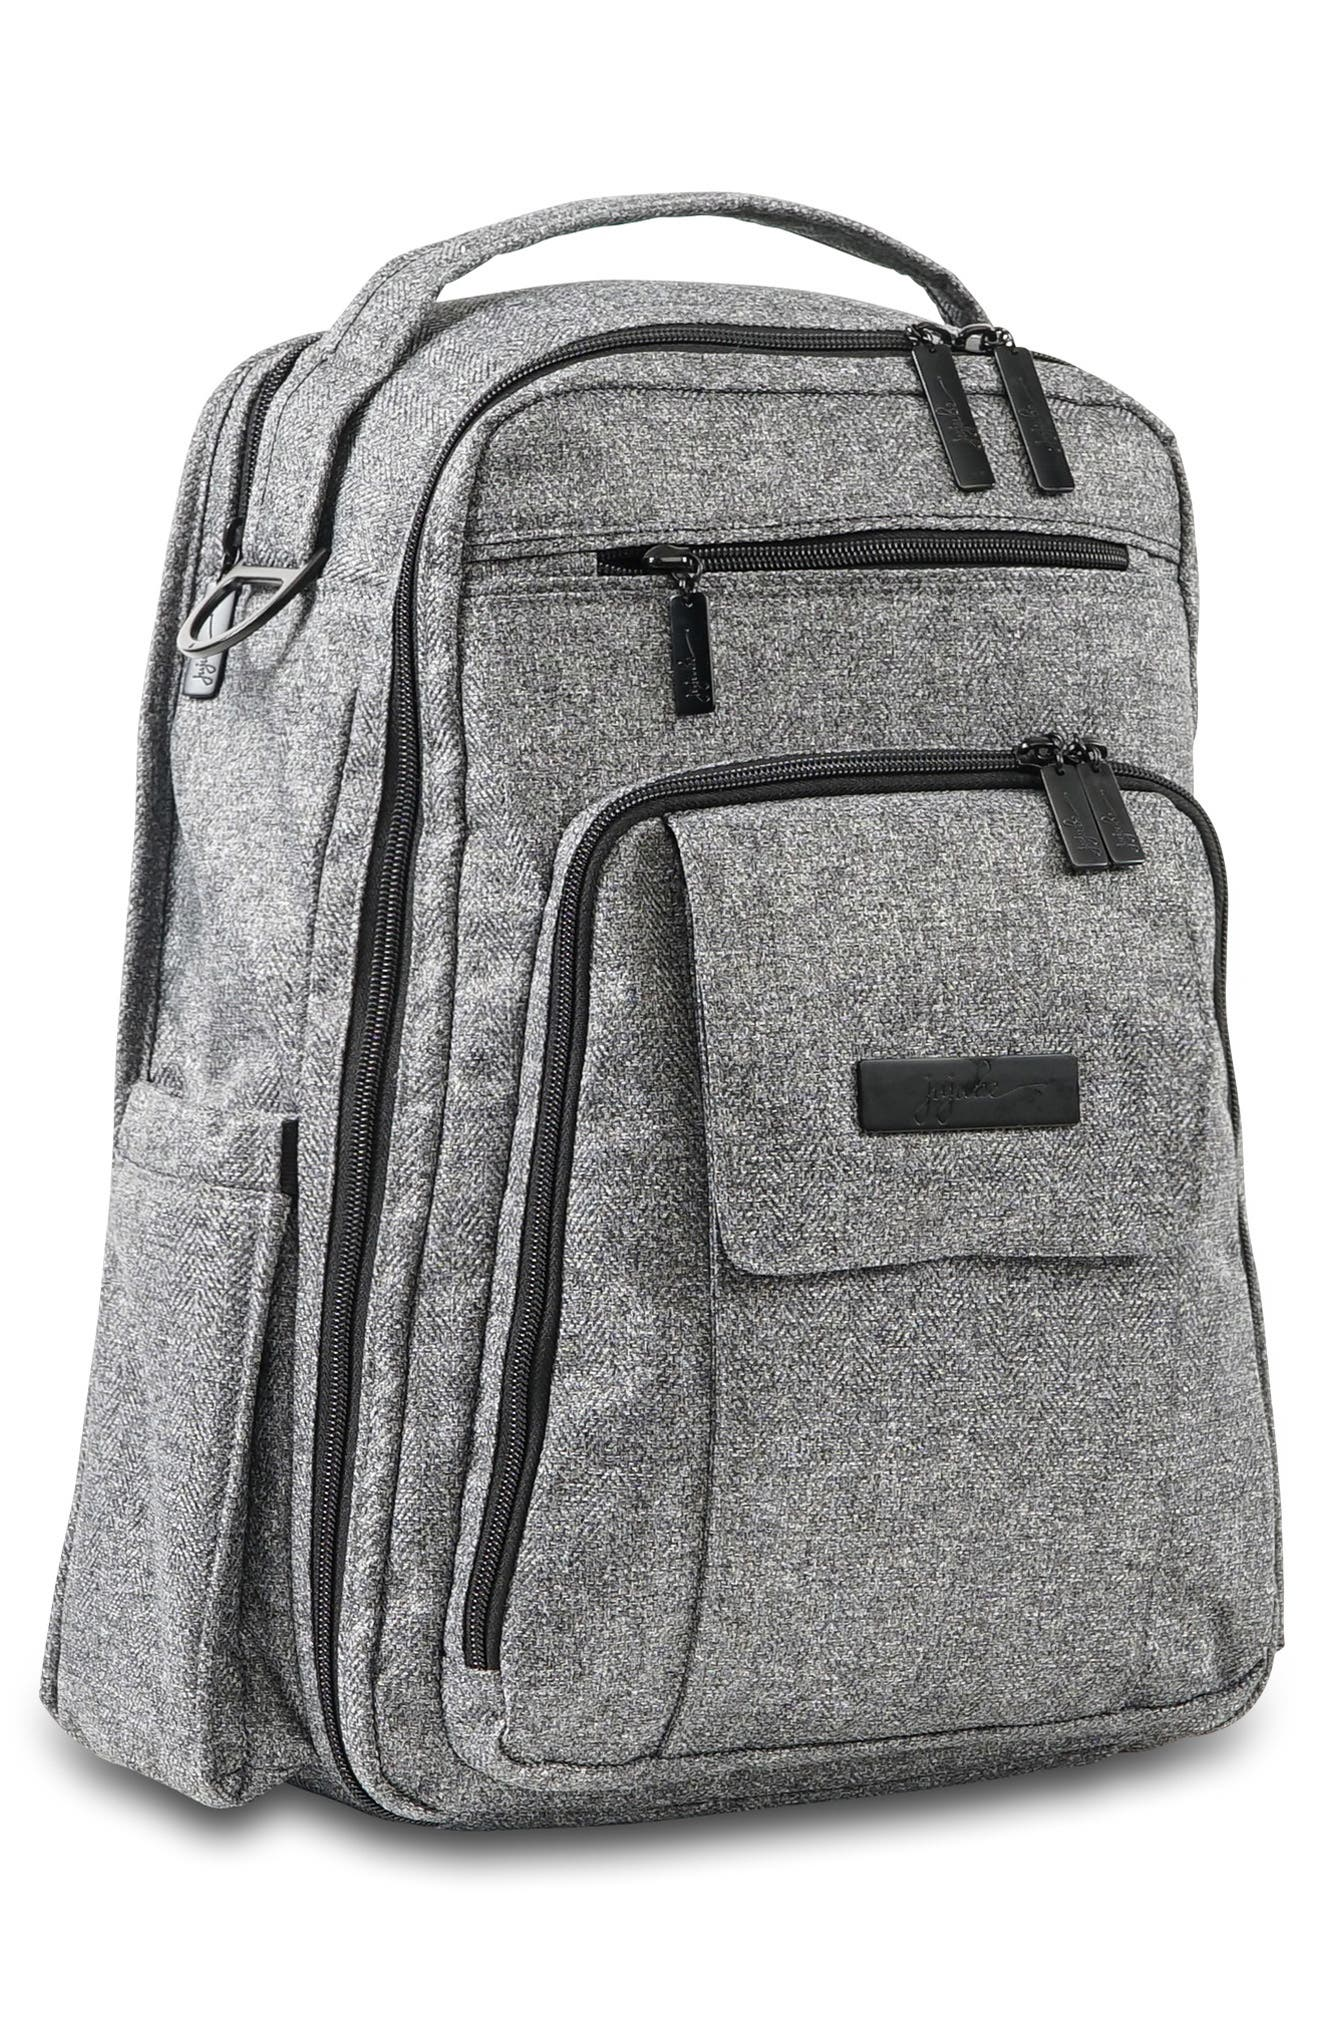 'Be Right Back - Onyx Collection' Diaper Backpack,                             Alternate thumbnail 5, color,                             GRAY MATTER